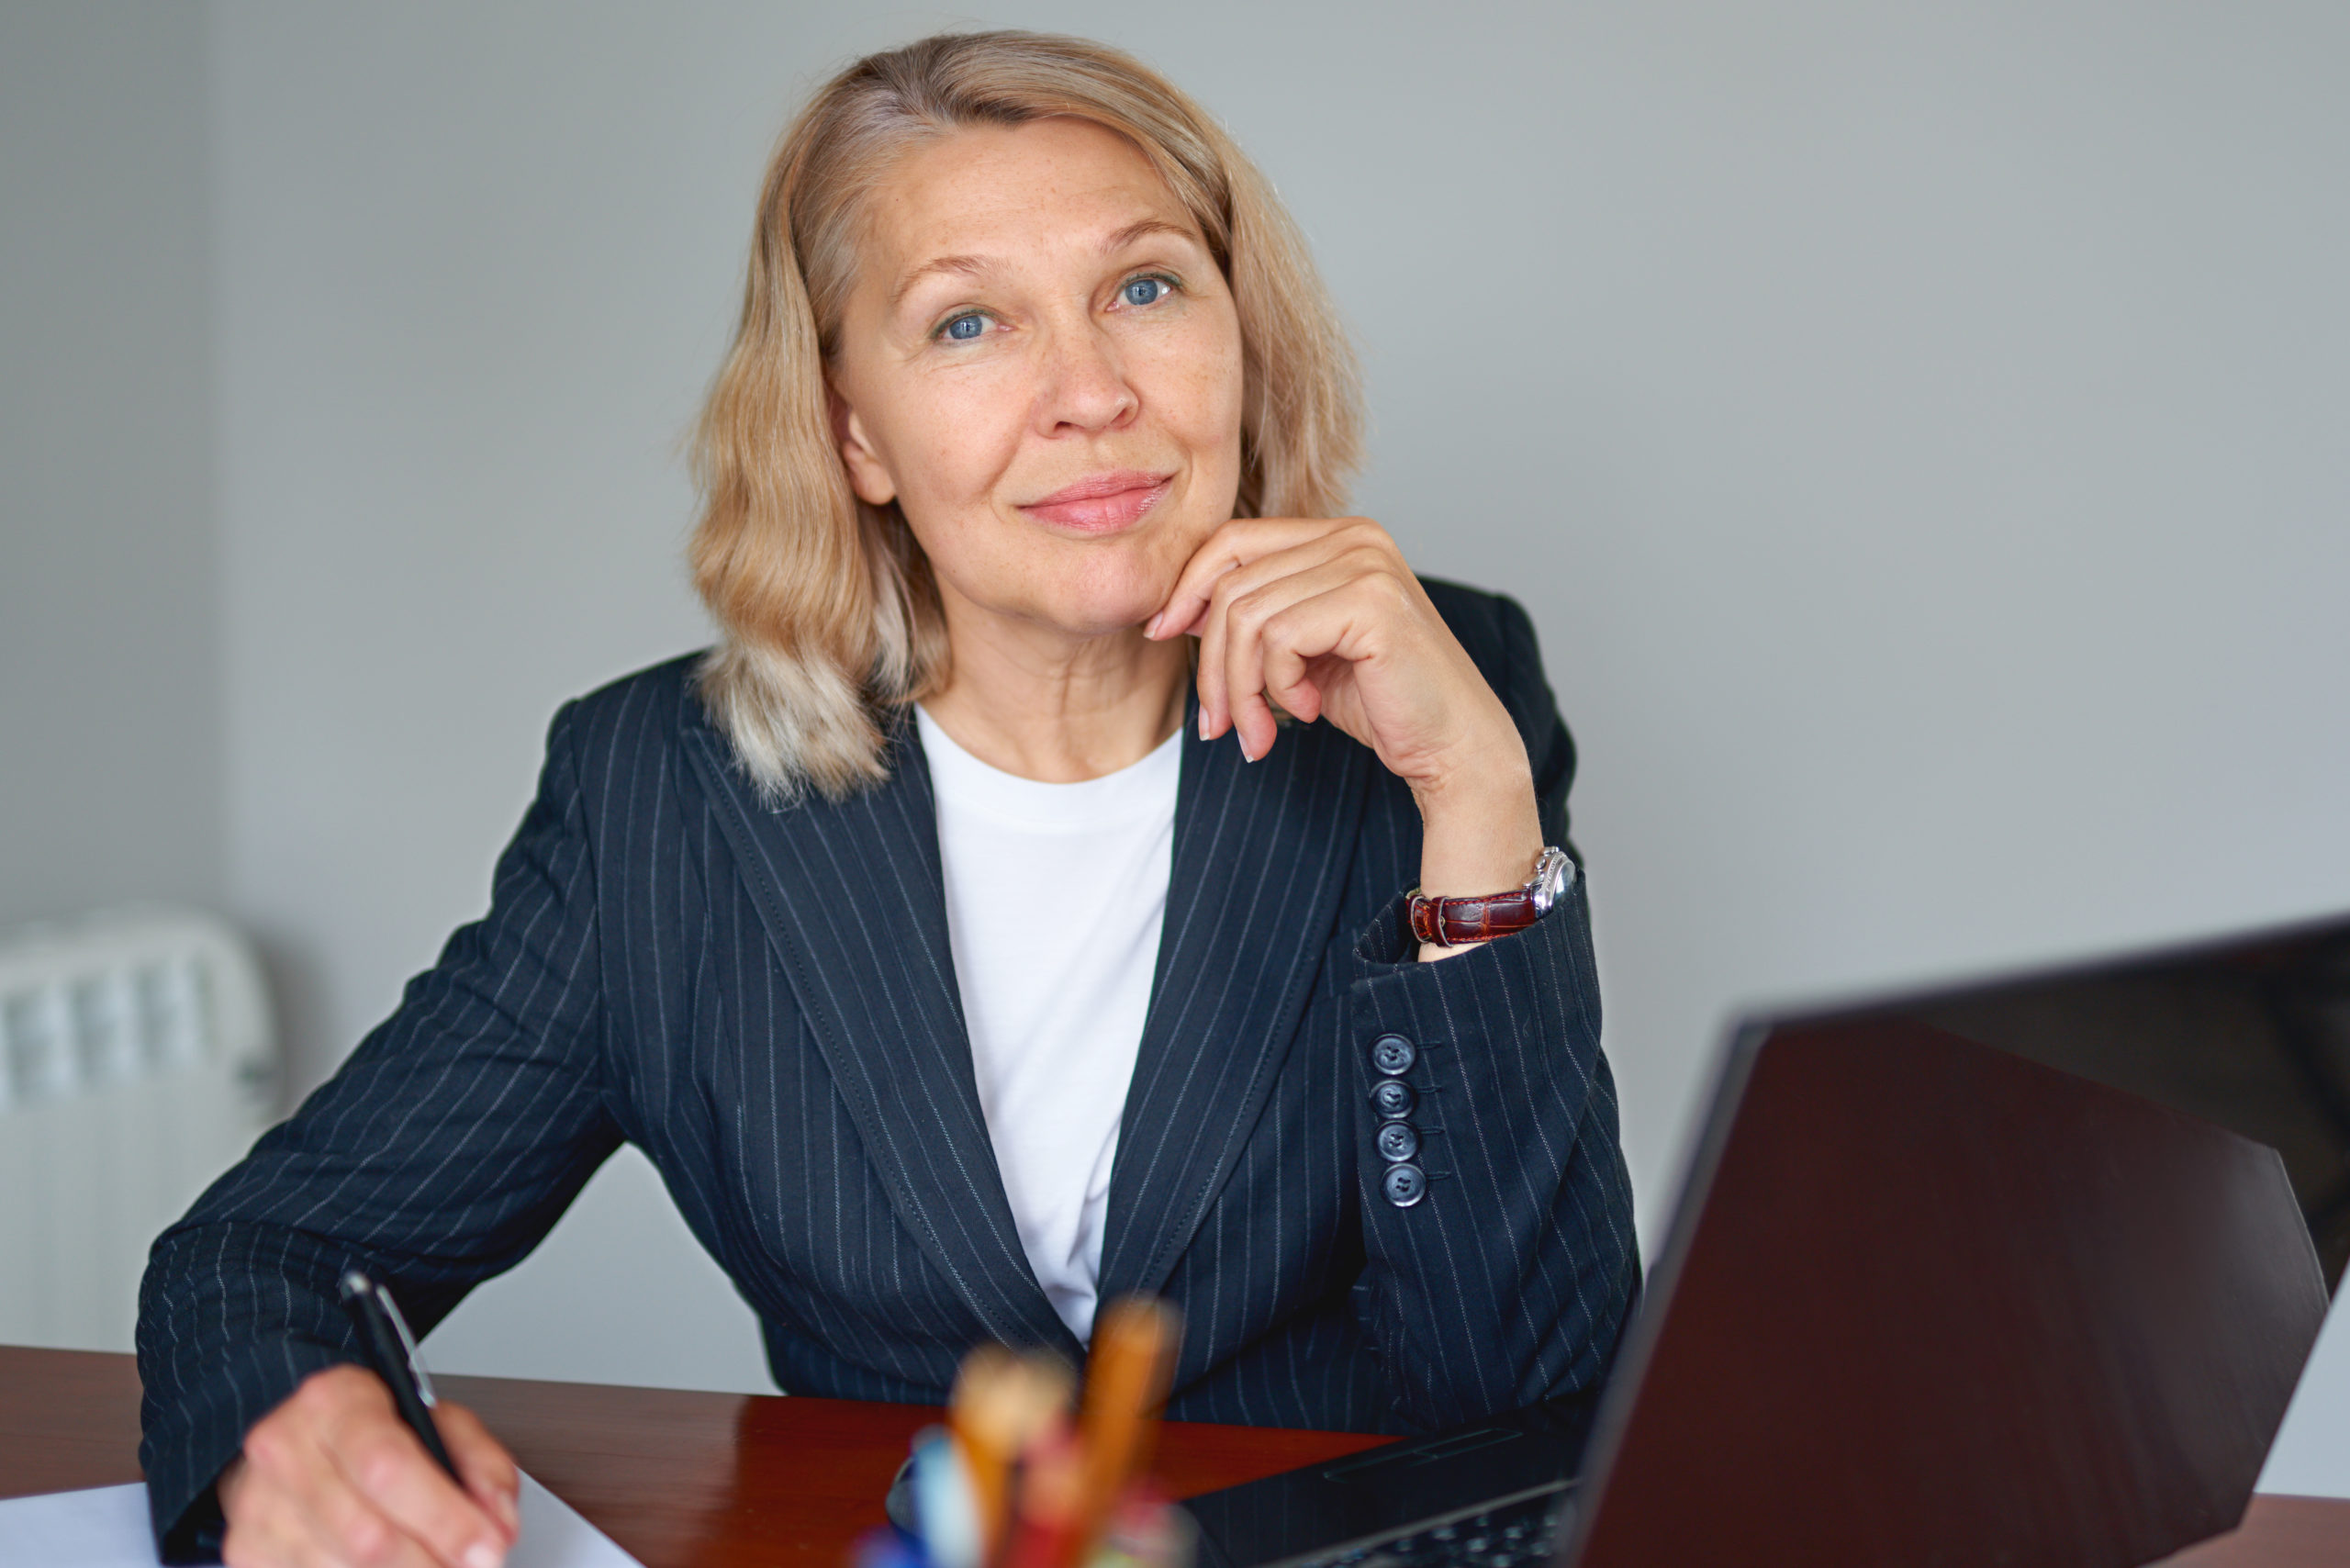 """Once You Retire, Will You No Longer Be a """"Professional Woman?"""" – Part 1"""